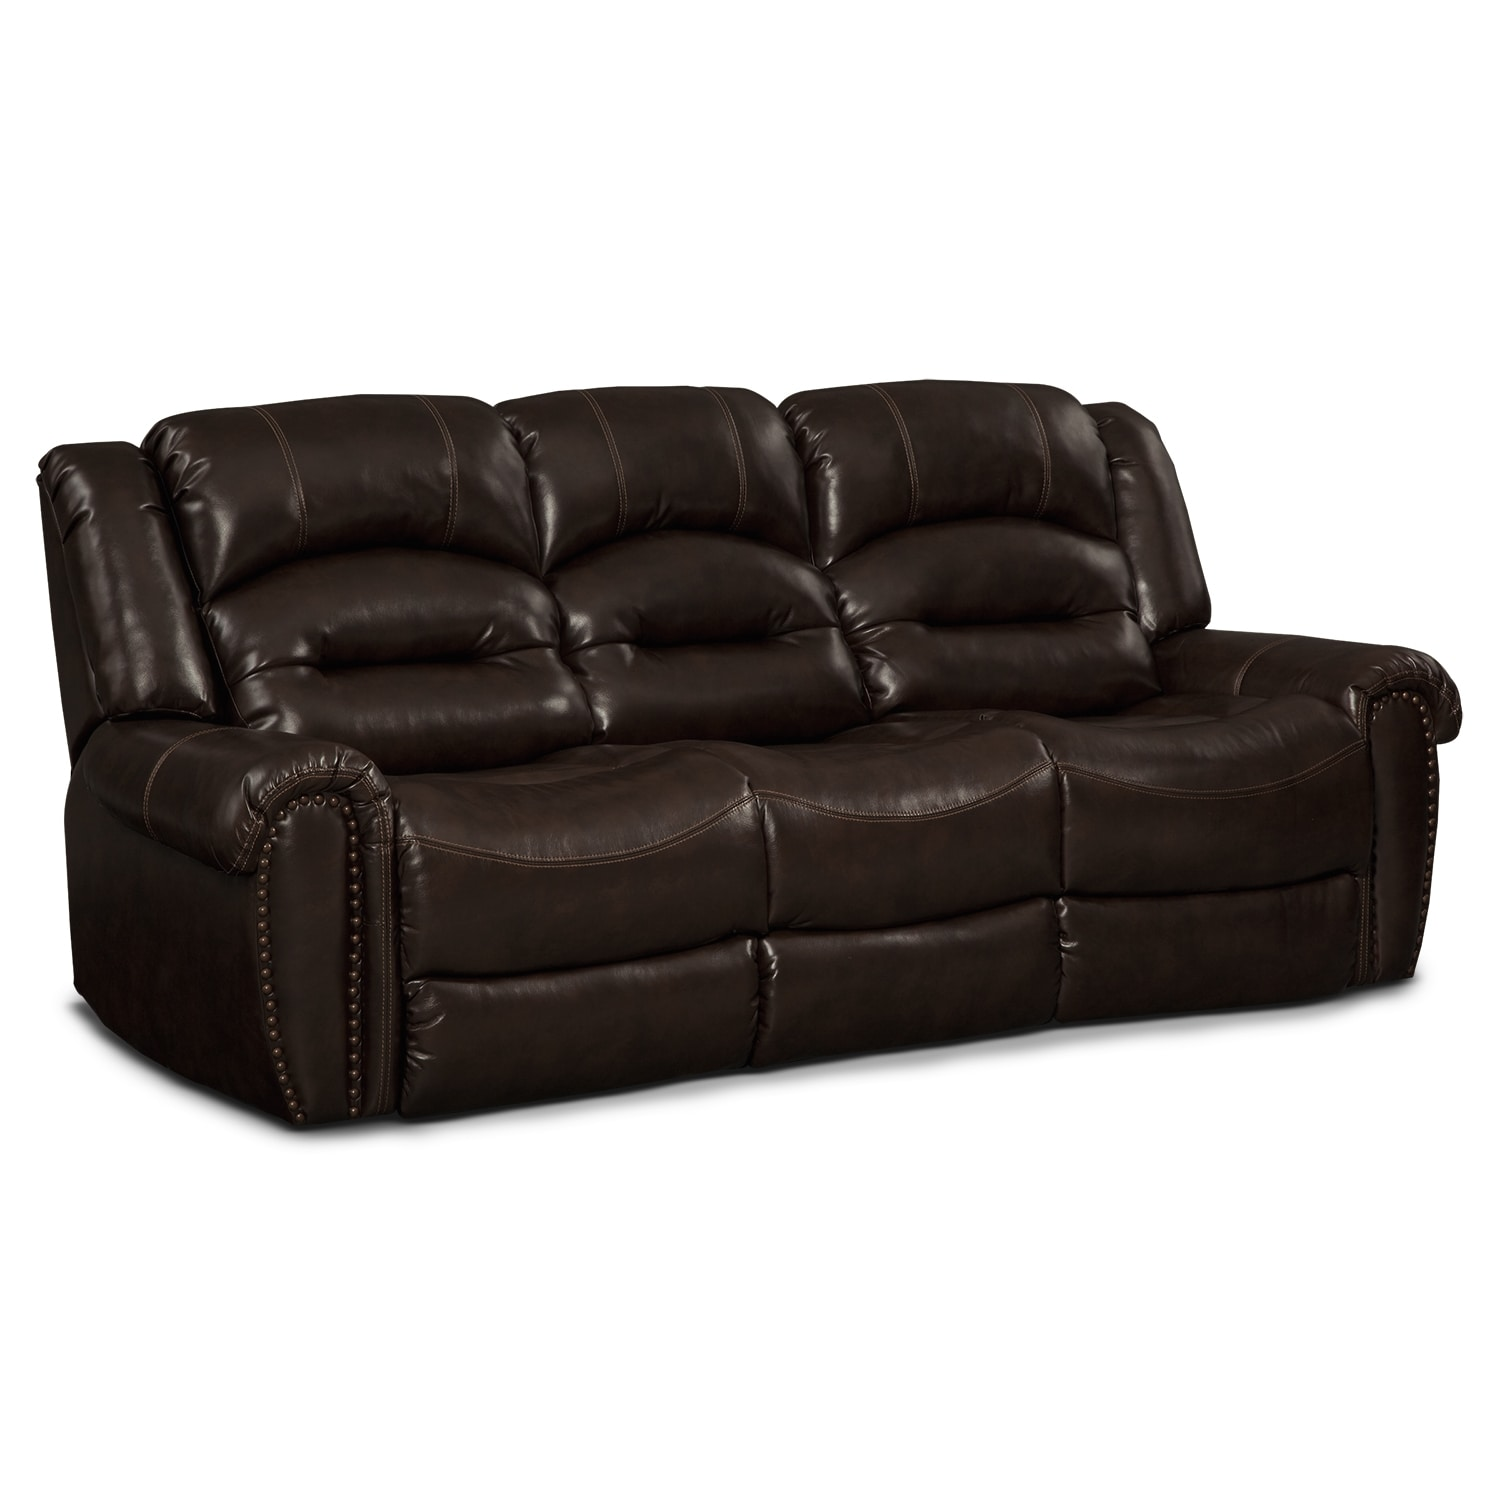 Galveston leather dual reclining sofa value city furniture for Leather reclining sofa